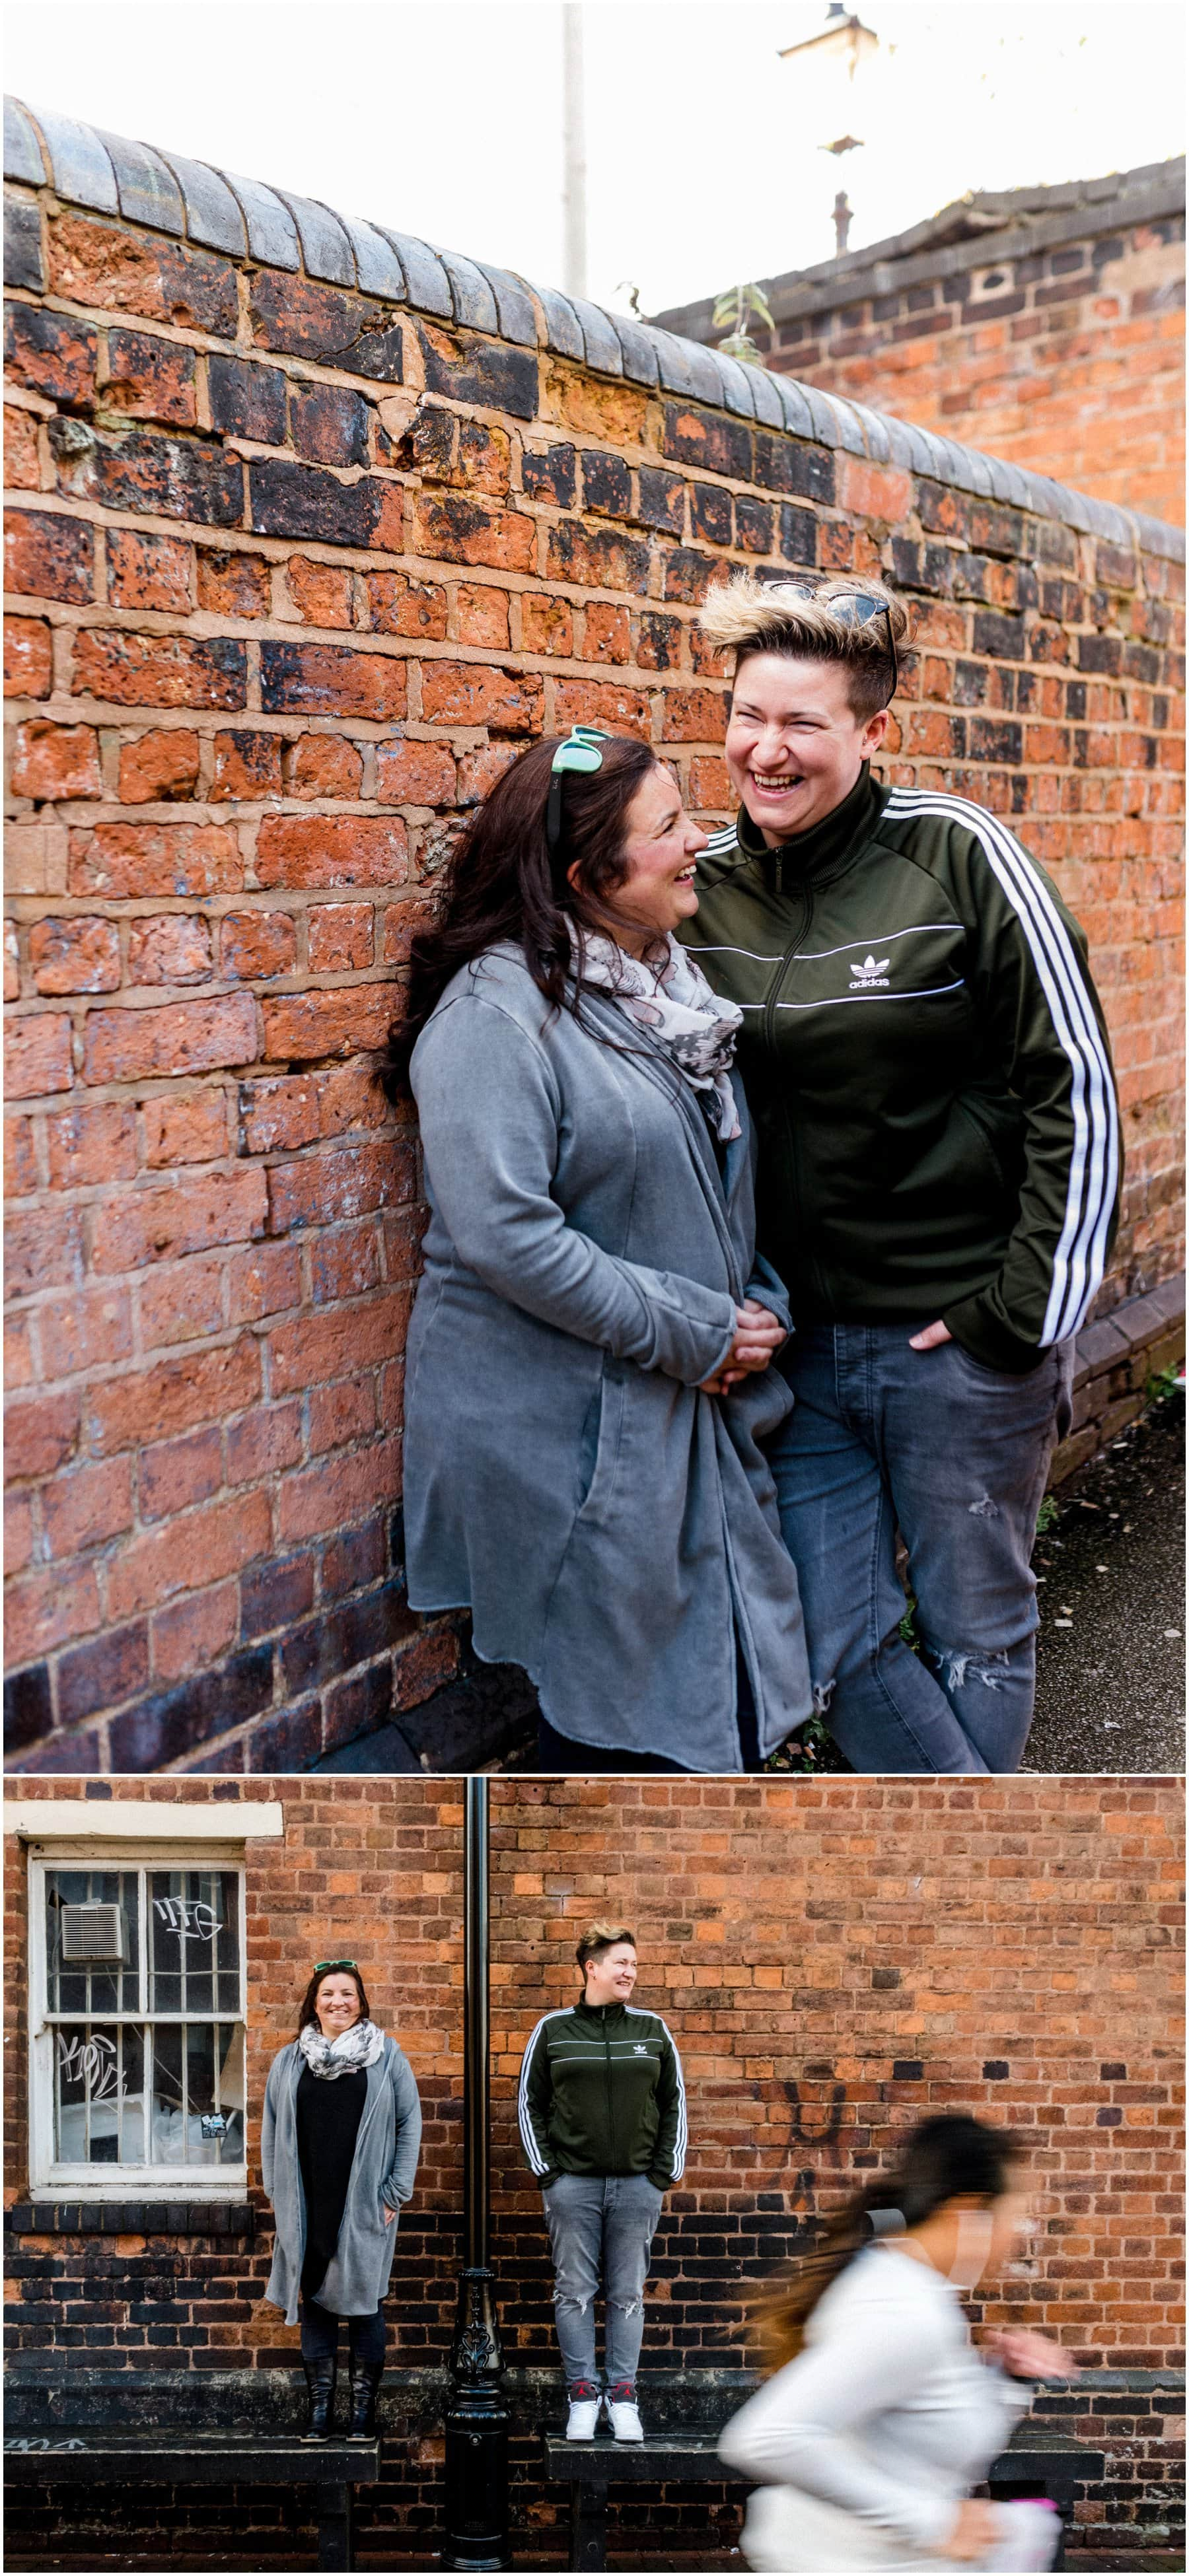 Becca and Suzy's Canalside Engagement Shoot around The Mailbox and The Cube in Birmingham City Centre. Photos by Lisa Carpenter Photography, West Midlands and Birmingham Wedding Photographer shooting alternative, cool and contemporary wedding photos.